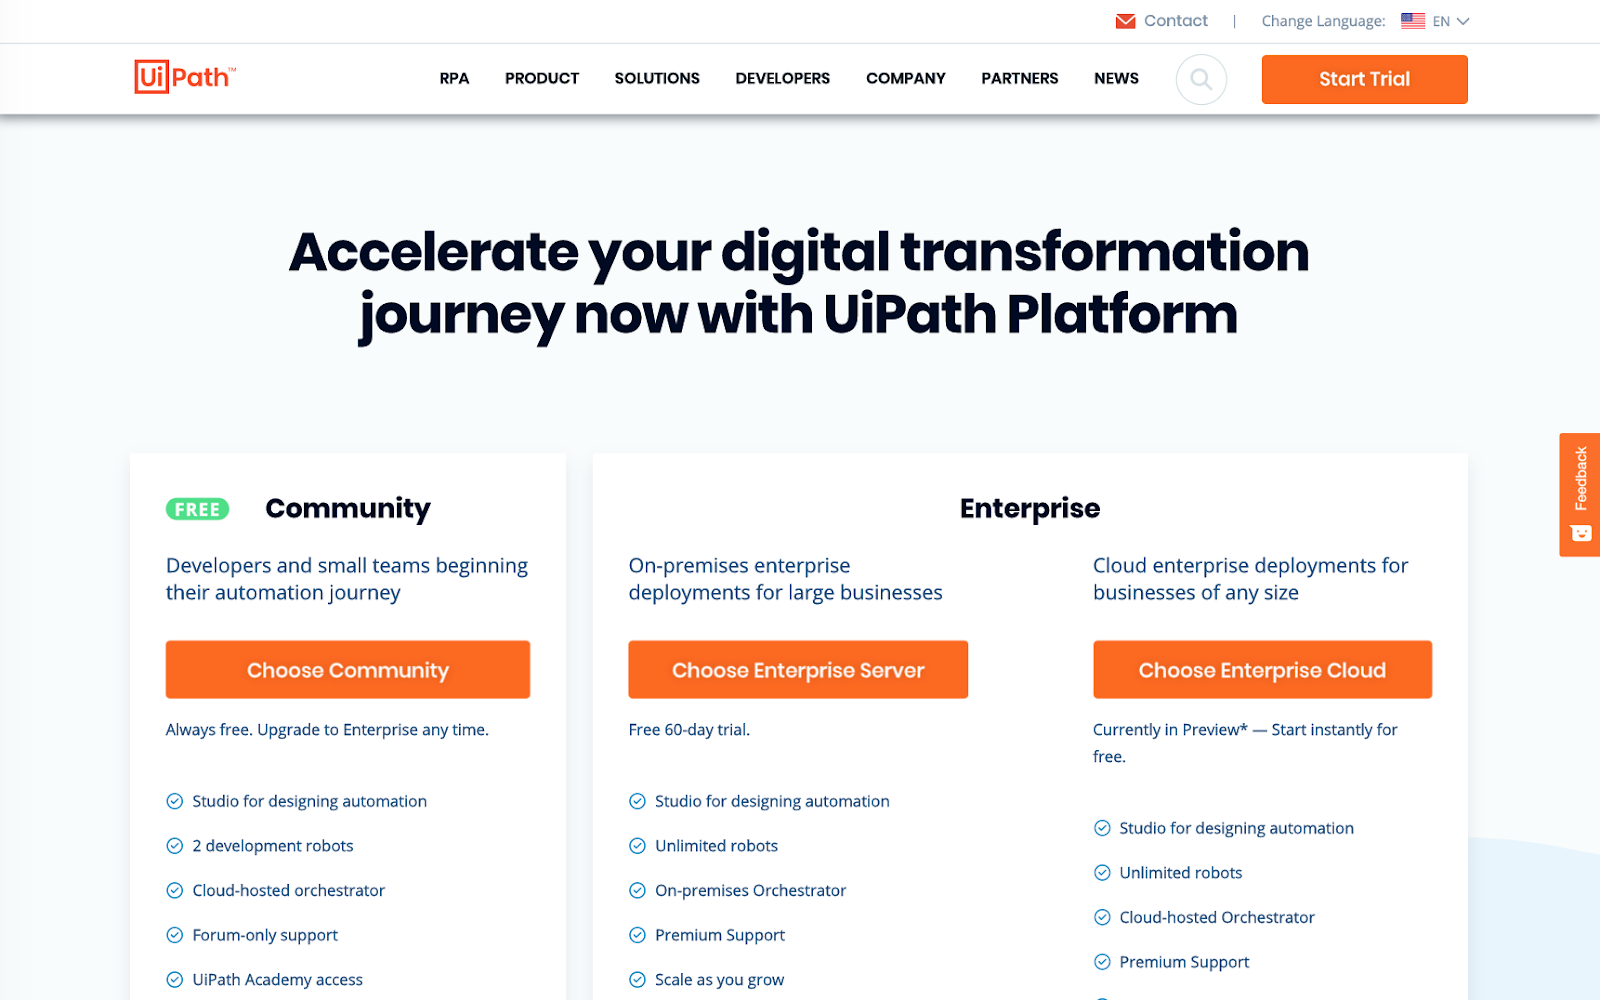 Integration with UiPath Robotic Process Automation